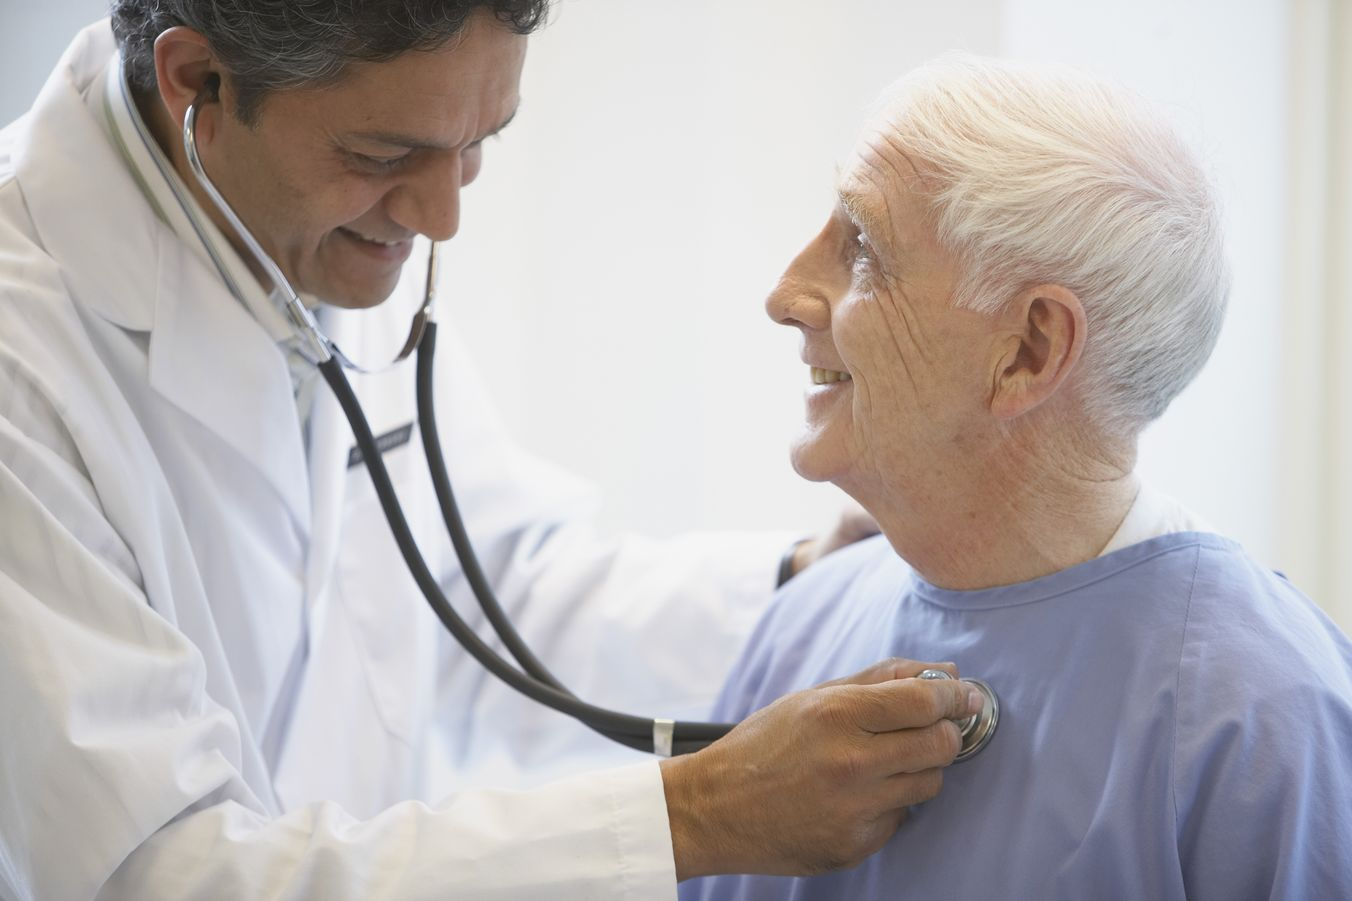 A doctor listens to an elderly man's heart through a stethoscope